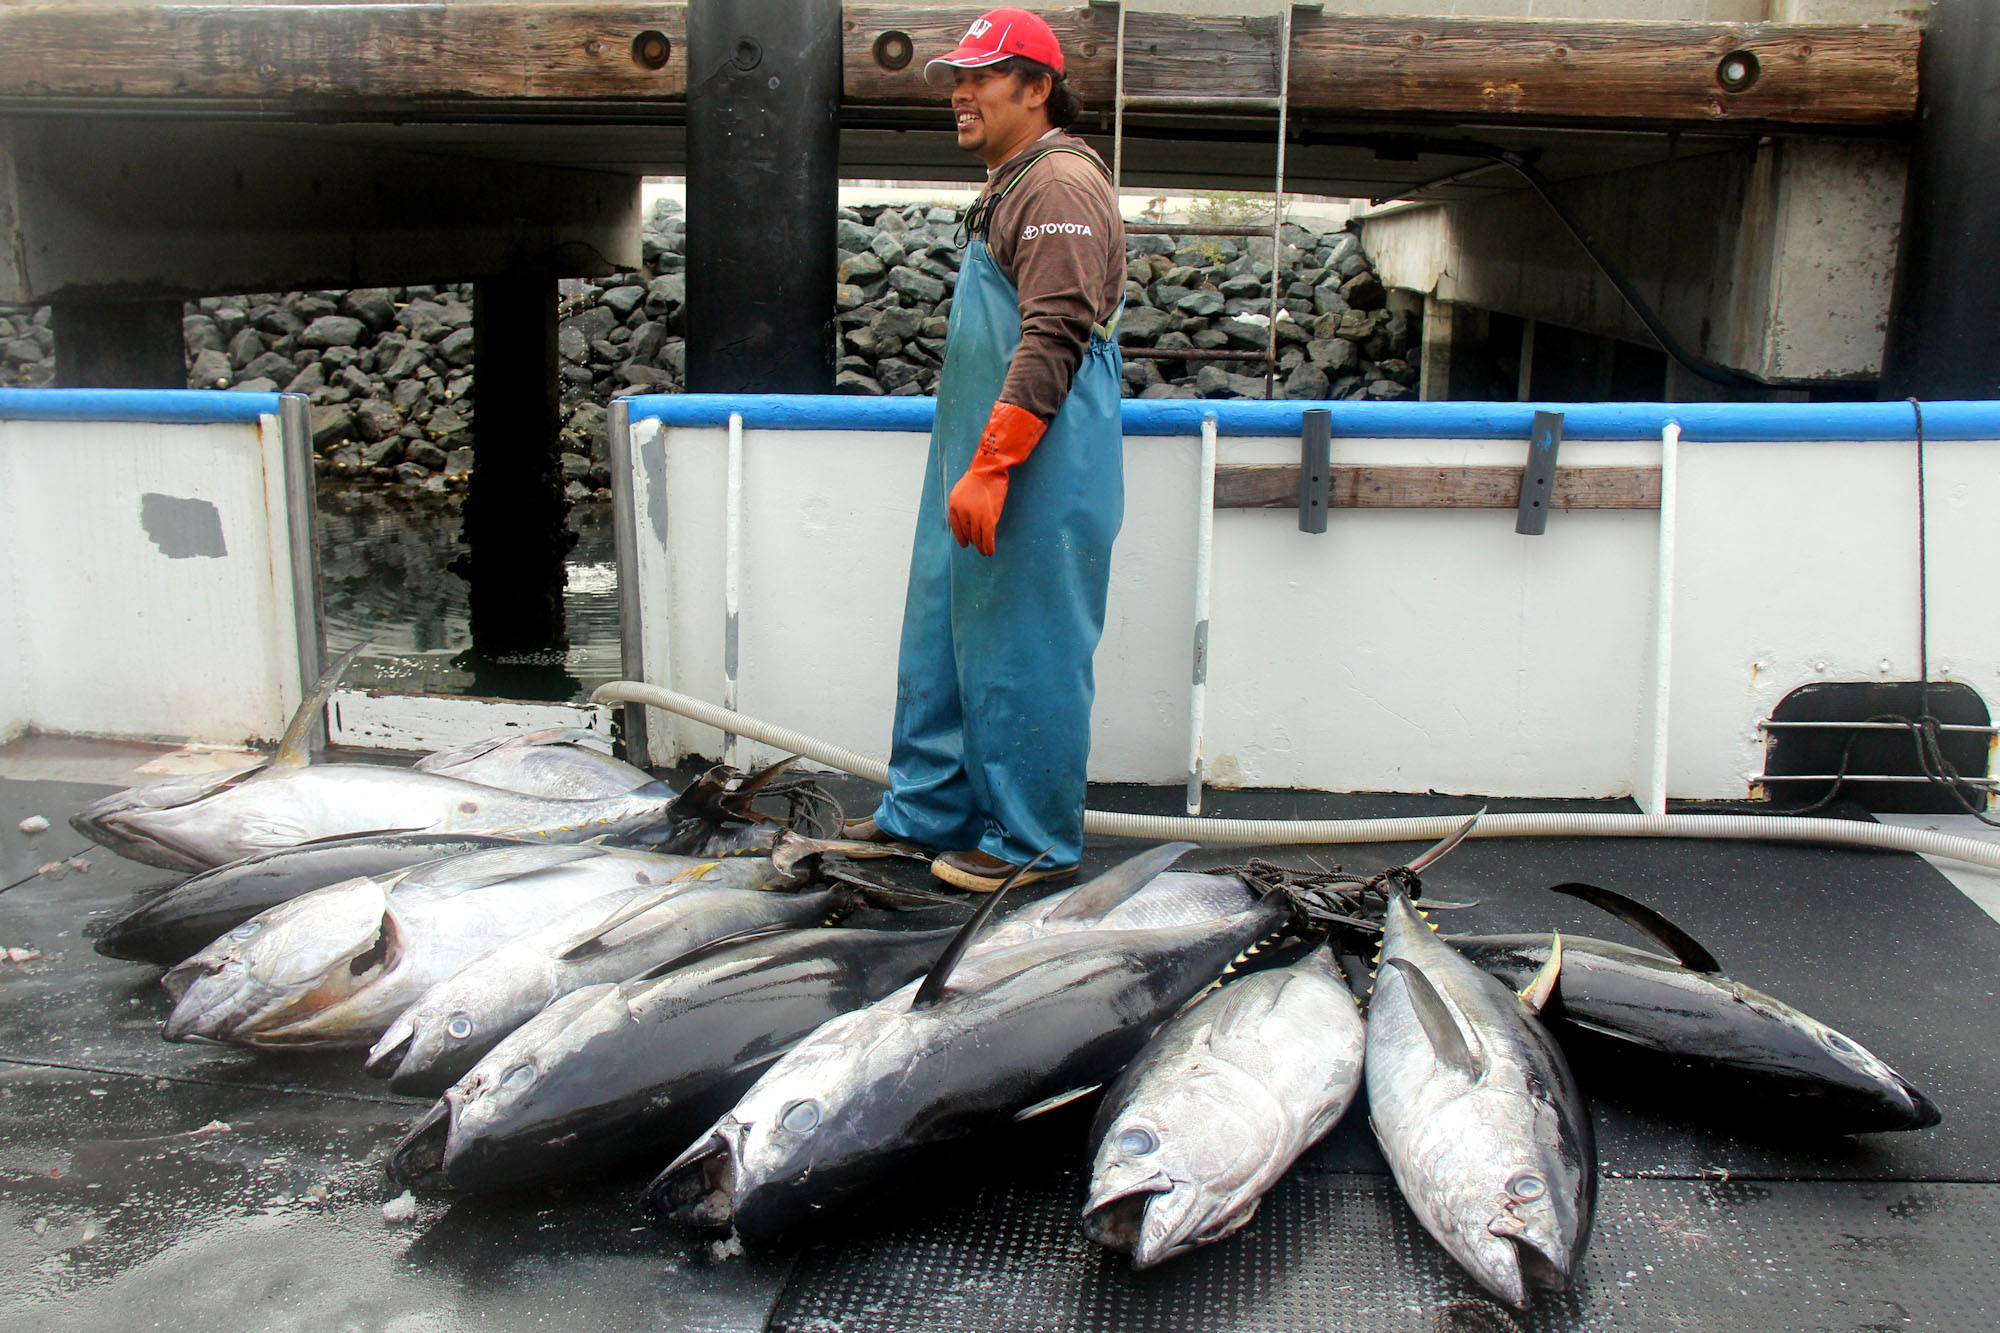 A man stands on a boat deck surrounded by tuna.